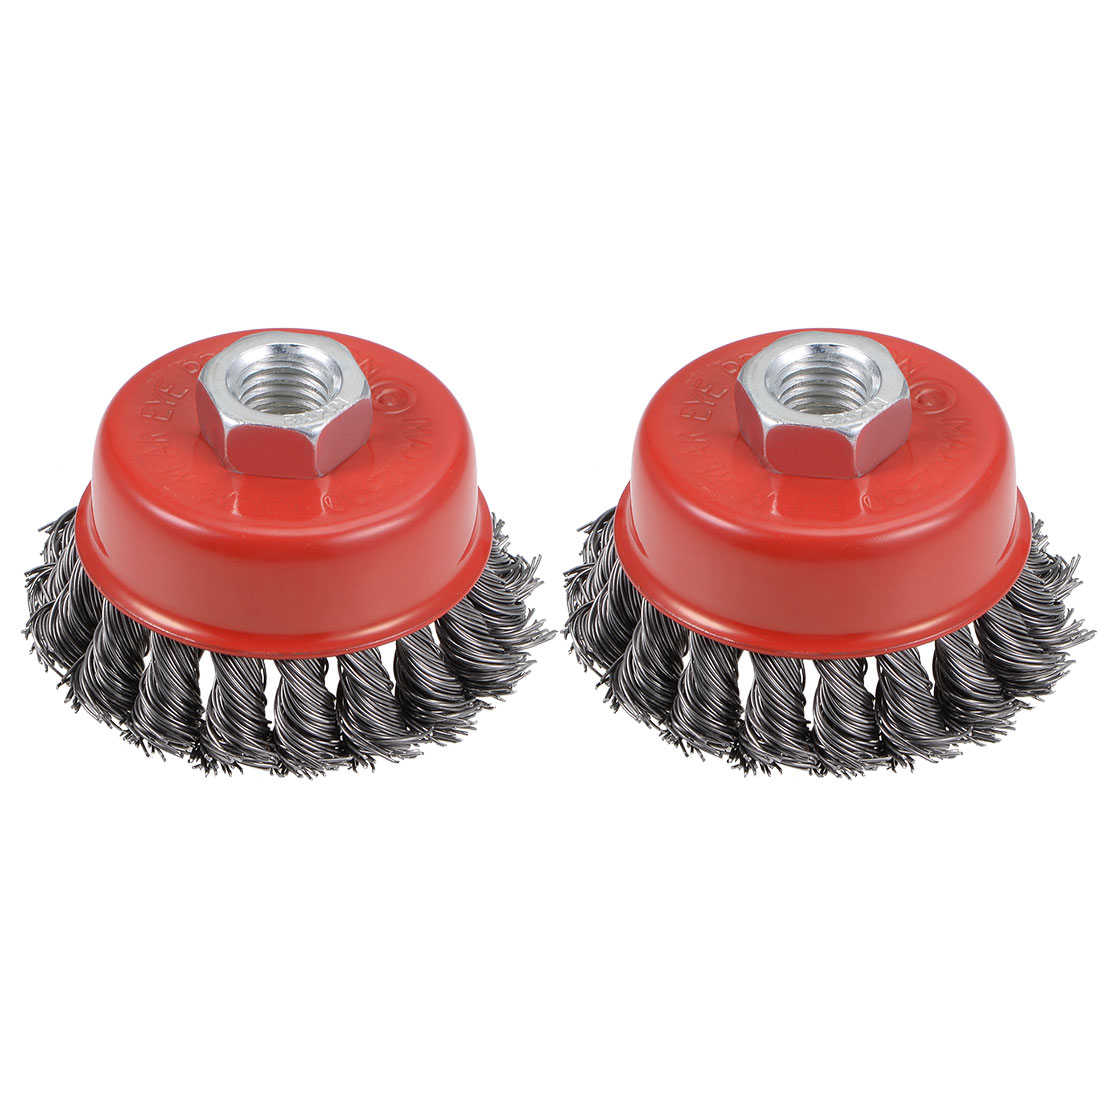 3-Inch Wire Cup Brush Twist Knotted Crimped Steel with Threaded Hole 2 Pcs